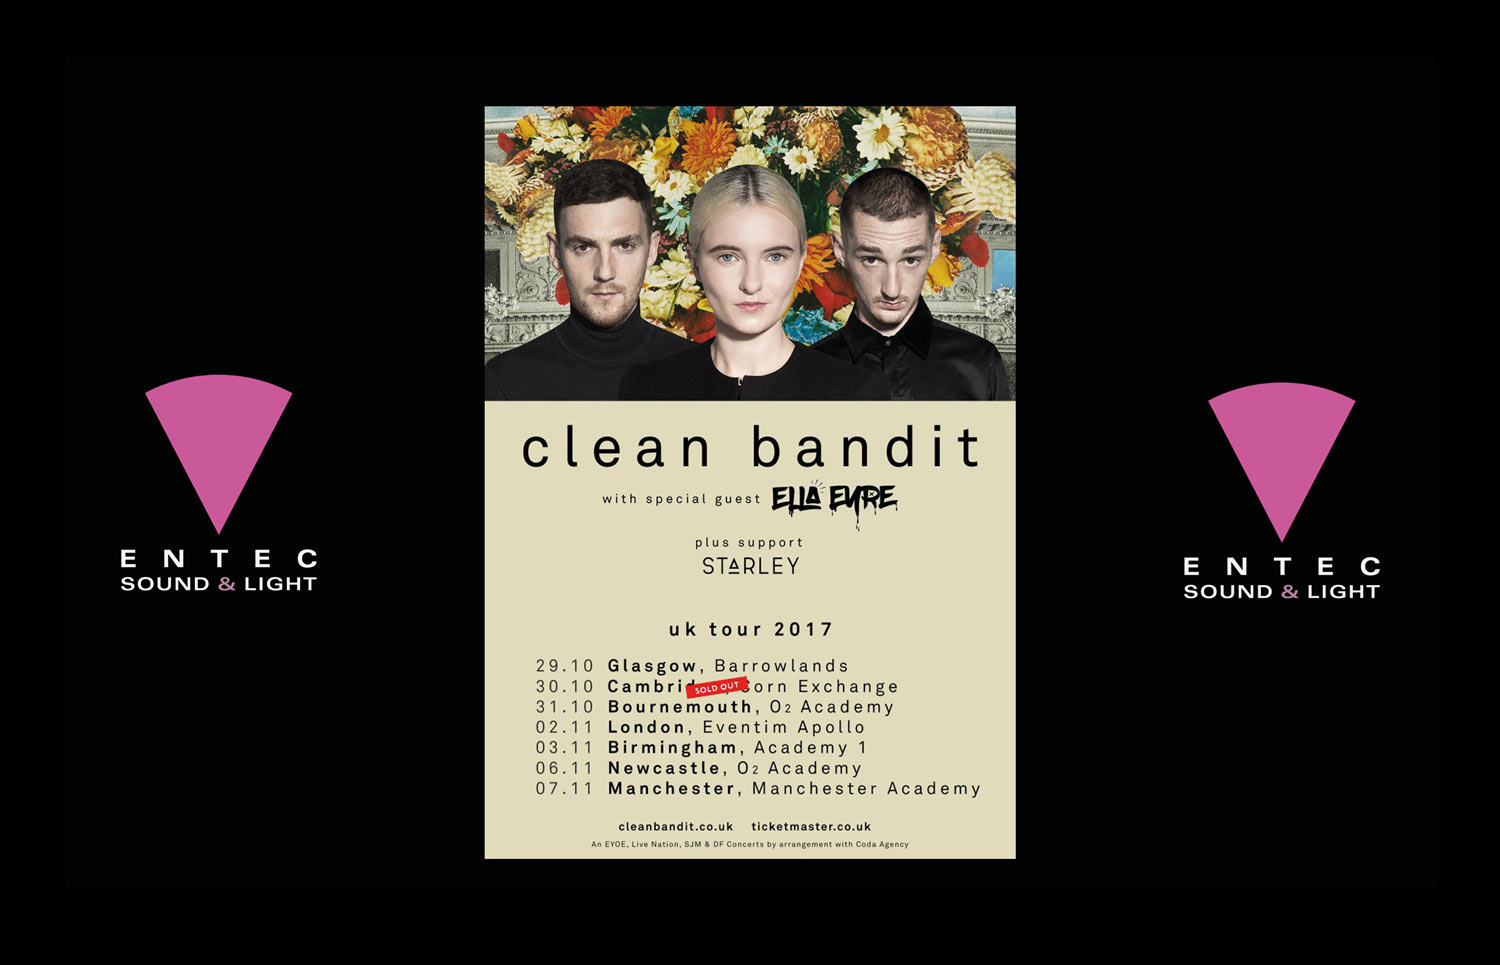 Entec - clean bandit UK 2017